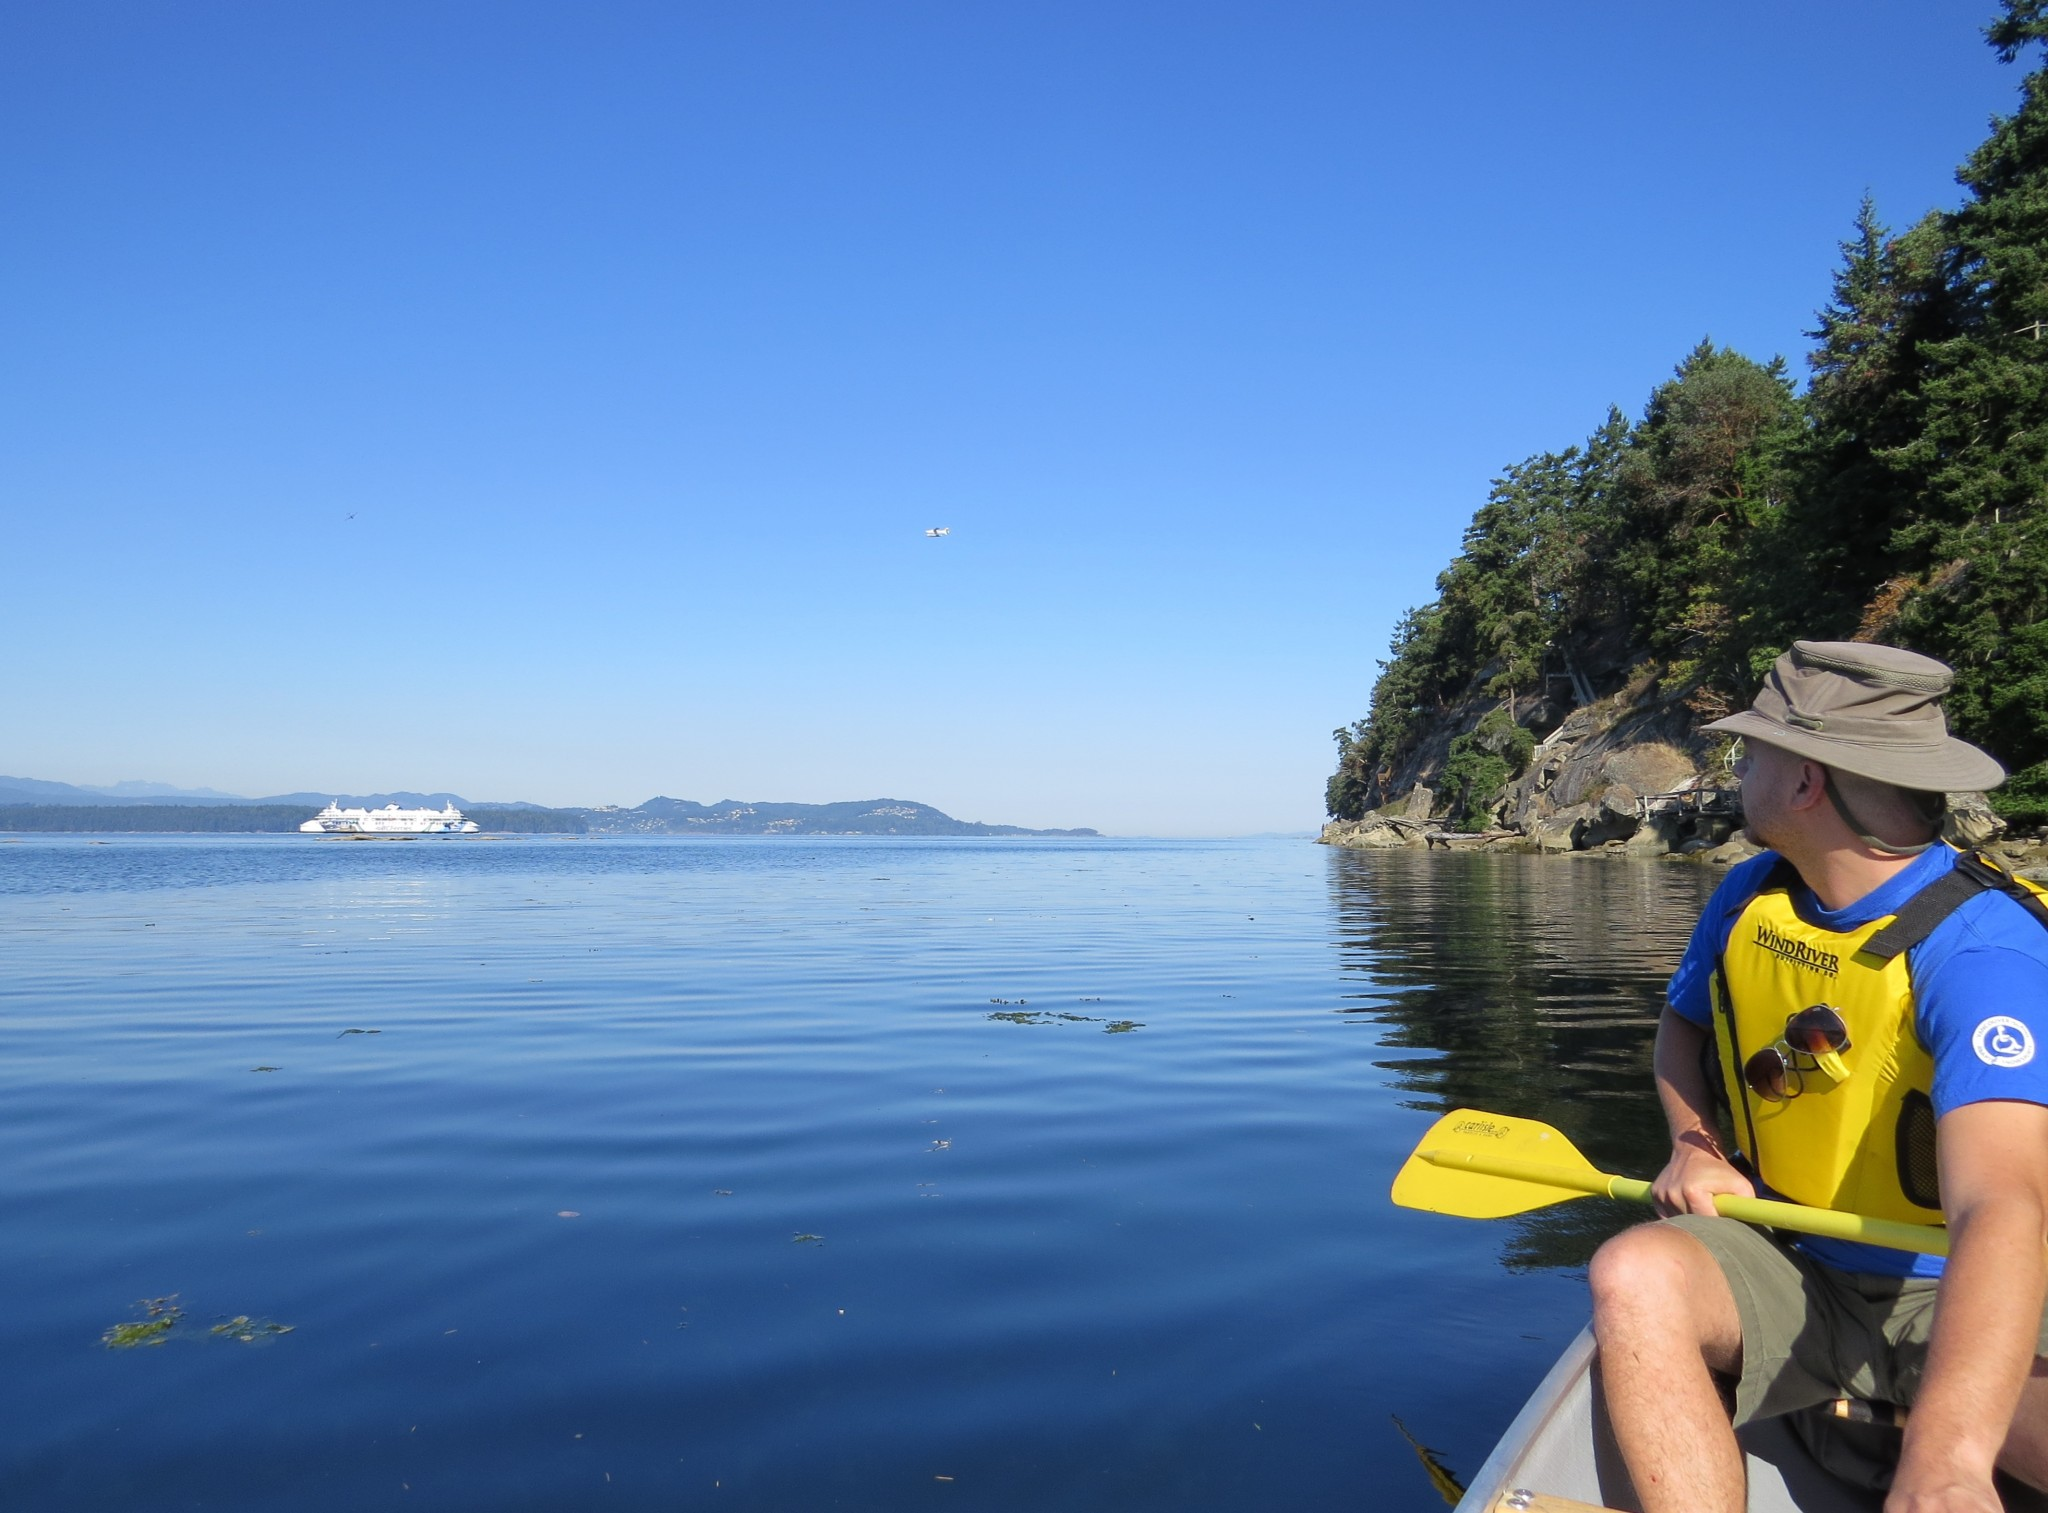 JR paddling and BC ferry in the background